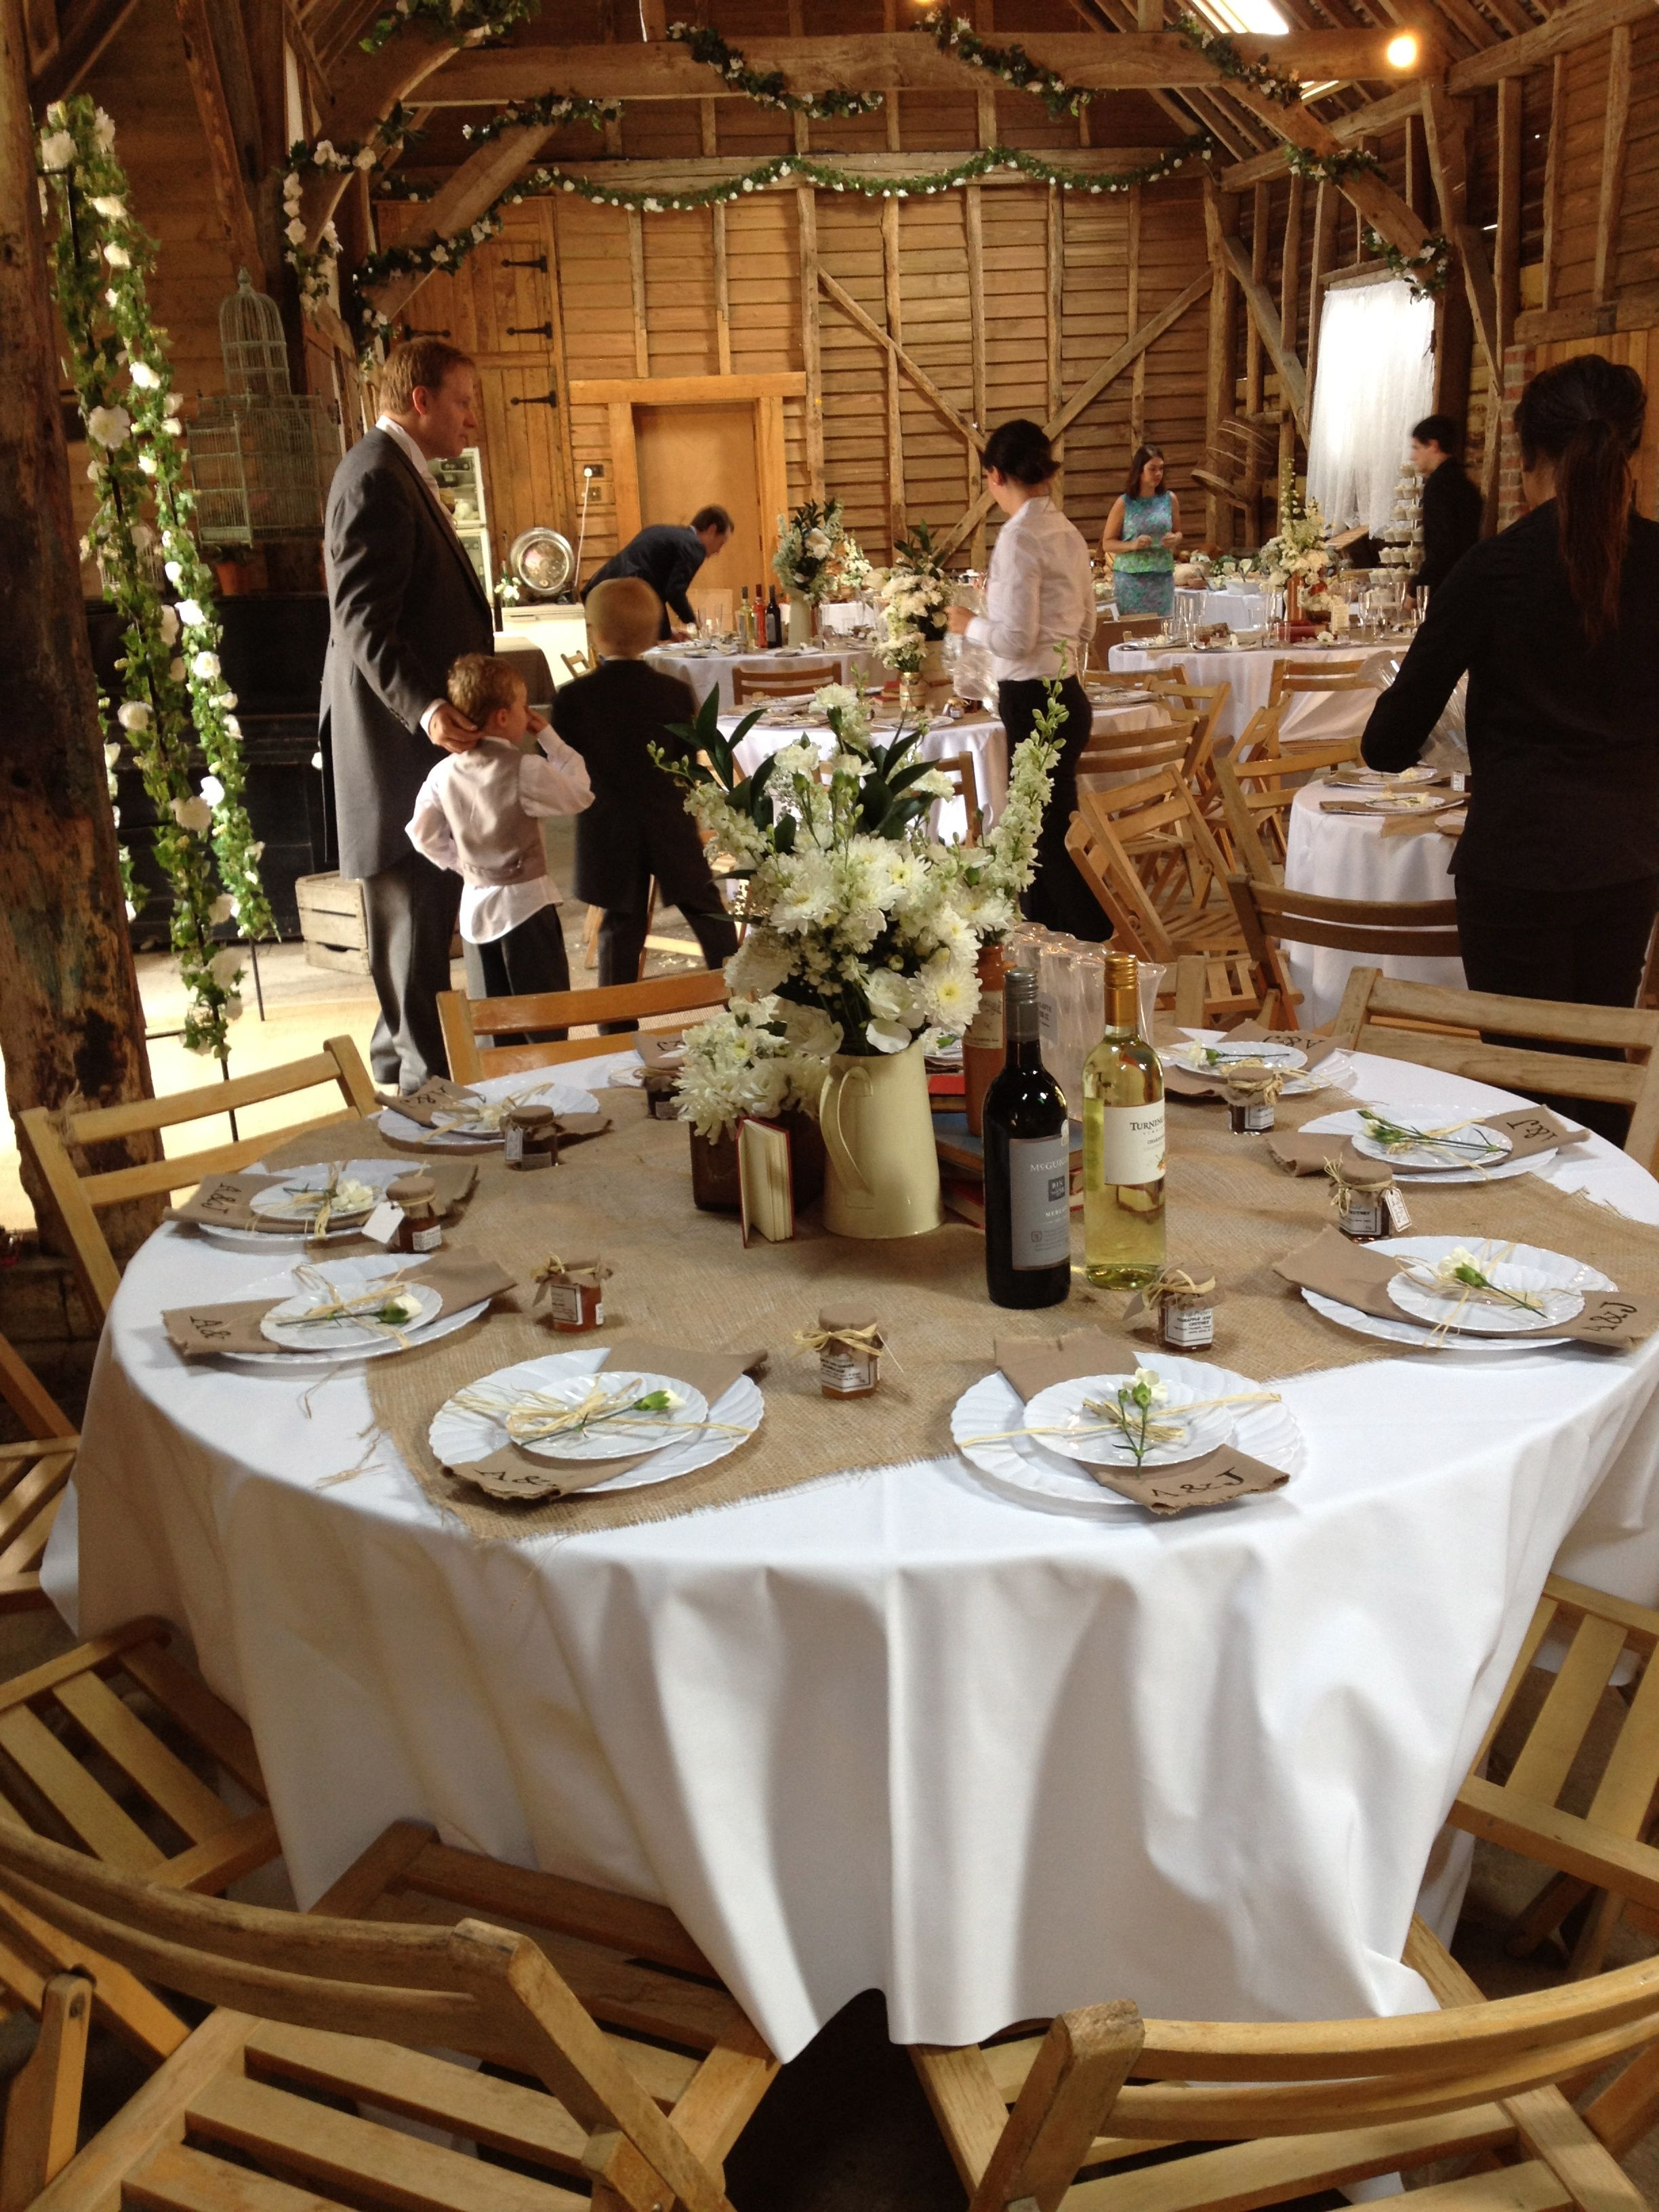 Rustic Wedding Table Decor | Wedding | Pinterest | Wedding tables ...